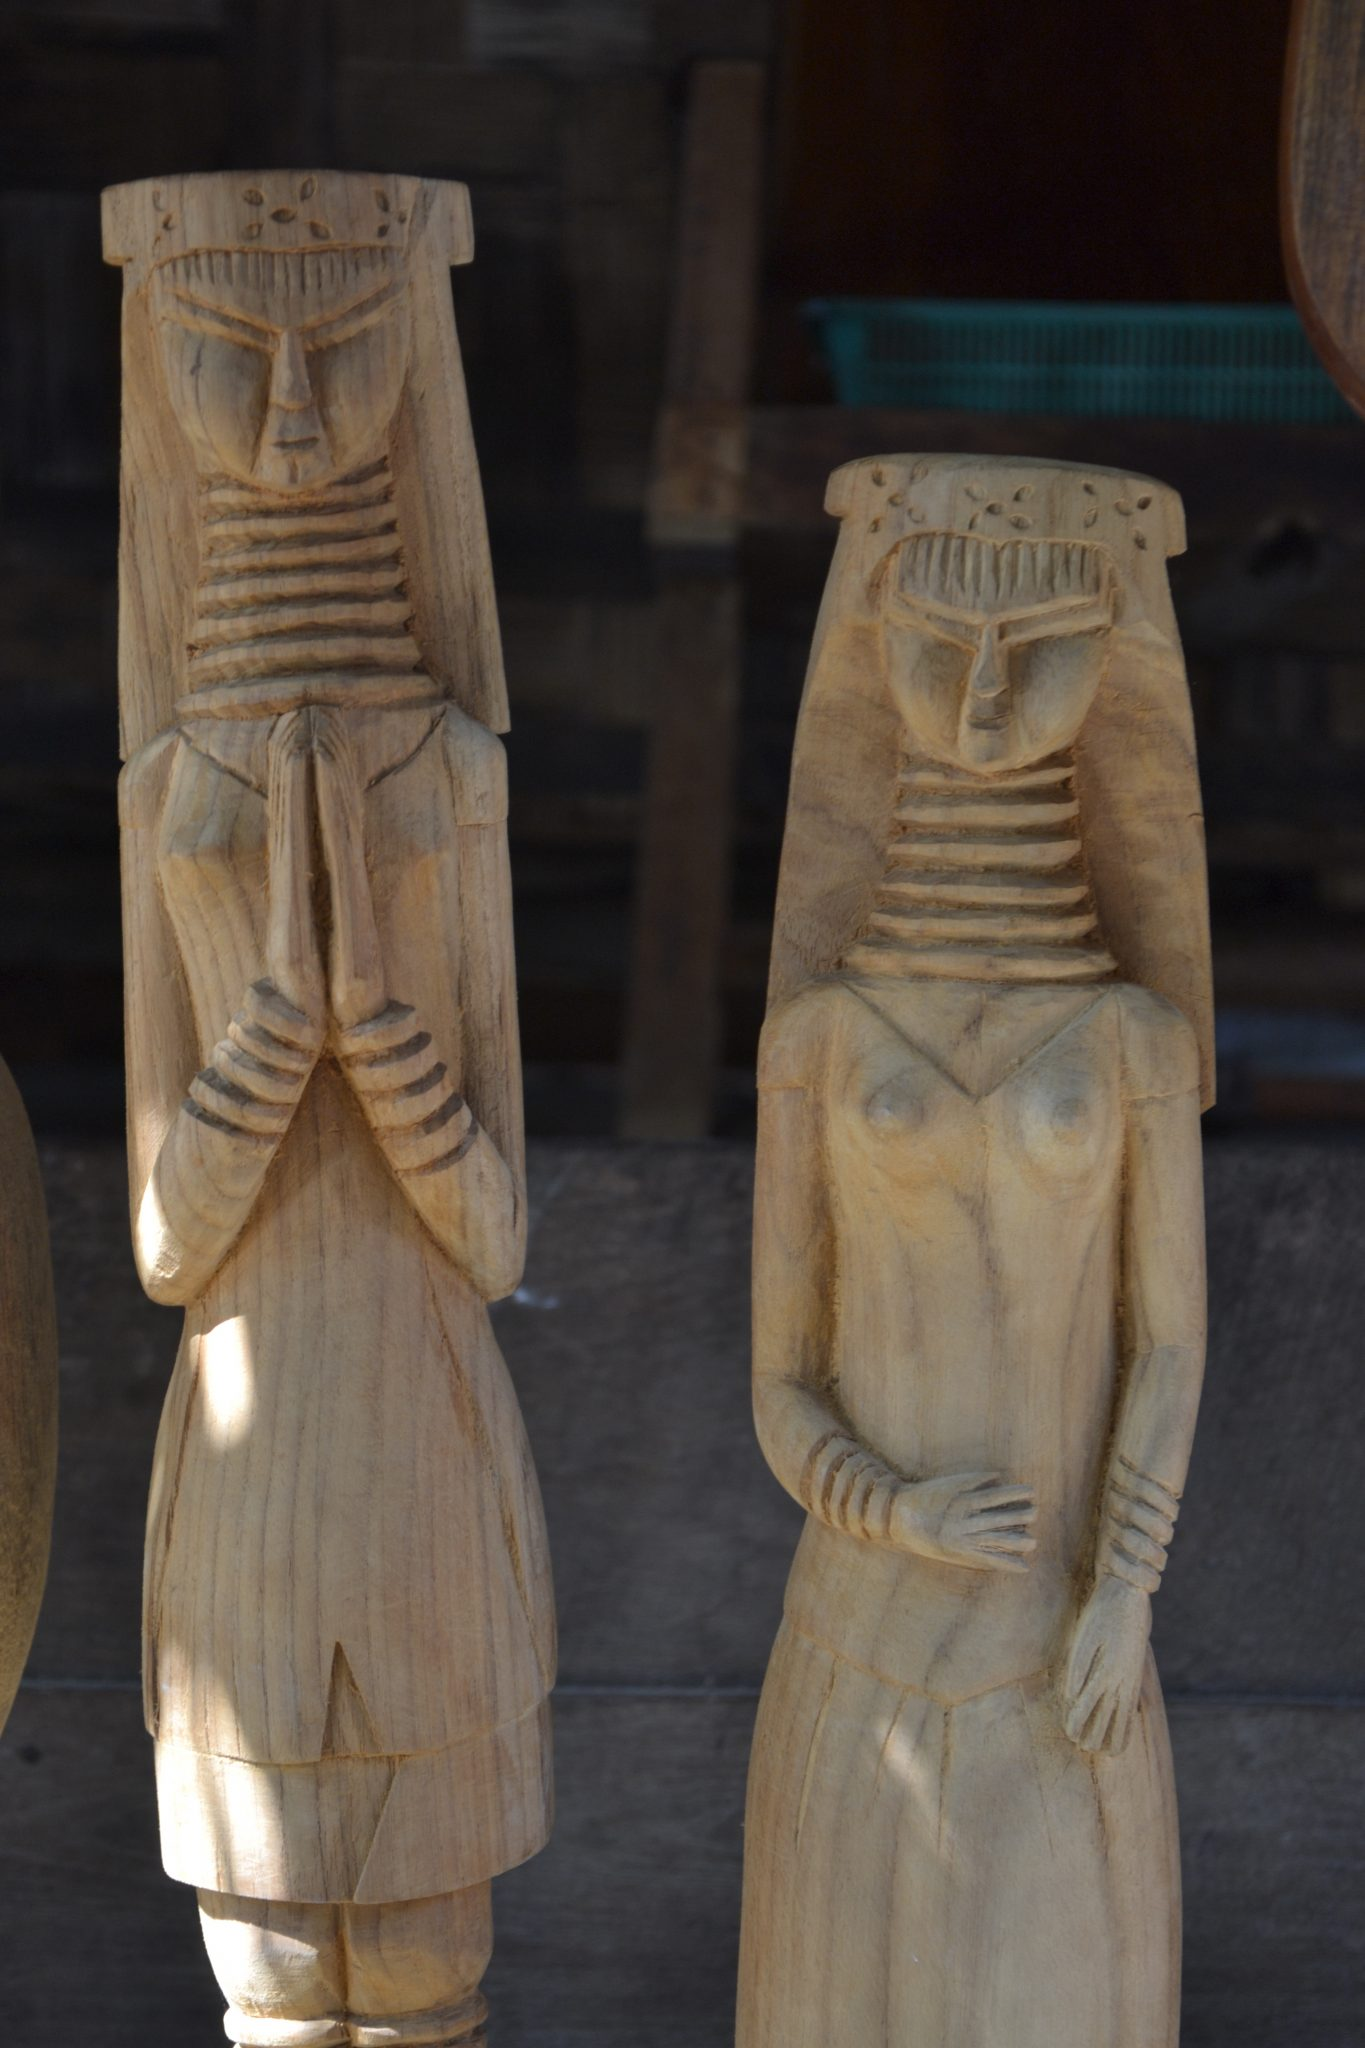 These wood carvings are made by Matio, a Kayan man who lives in Huay Sua Thao. It takes a lot of time, patience and experience to make figures like these ones. Matio uses teakwood from the surrounding forests. He doesn't cut trees, but picks wood from the ground, leftover from previous logging. The artist is willing to work together with tourists and try to make something out of wood. However, those interested must be willing to work on it for at least a few hours. Photo by: Joney Habraken